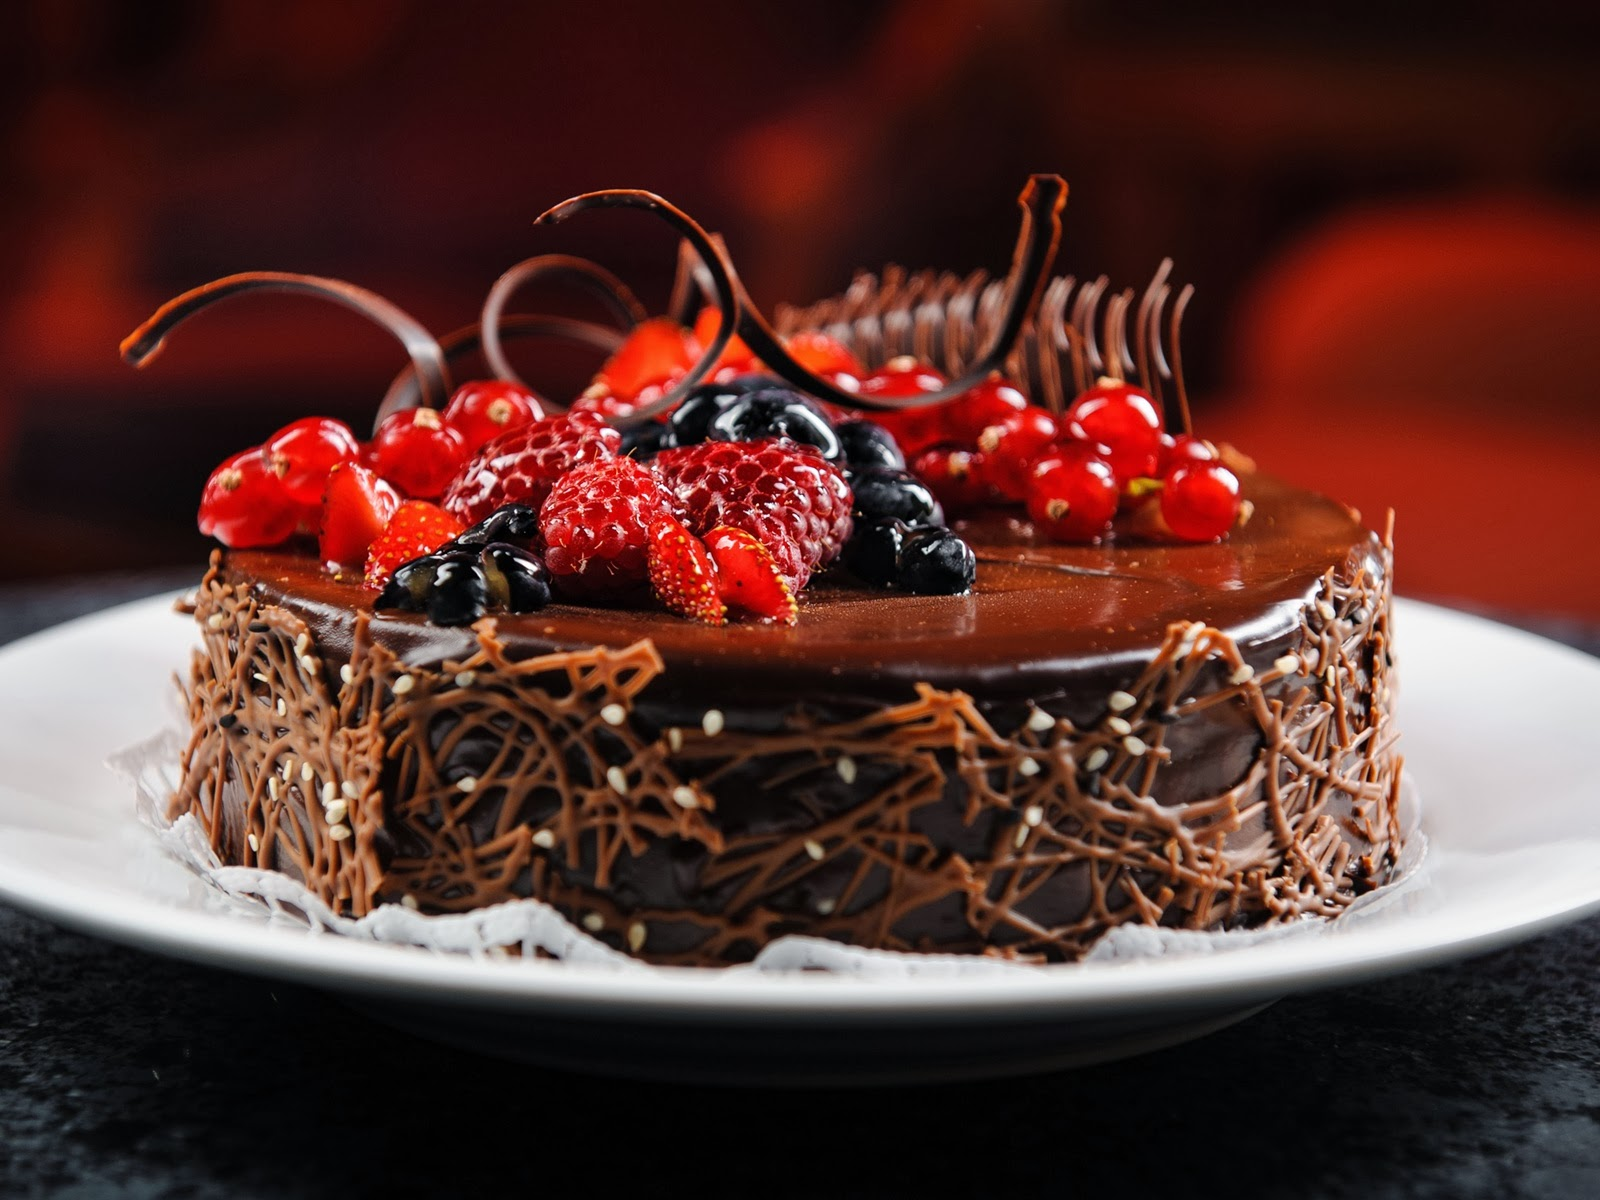 Chocolate Cake HD Wallpapers Free Download ~ Unique Wallpapers